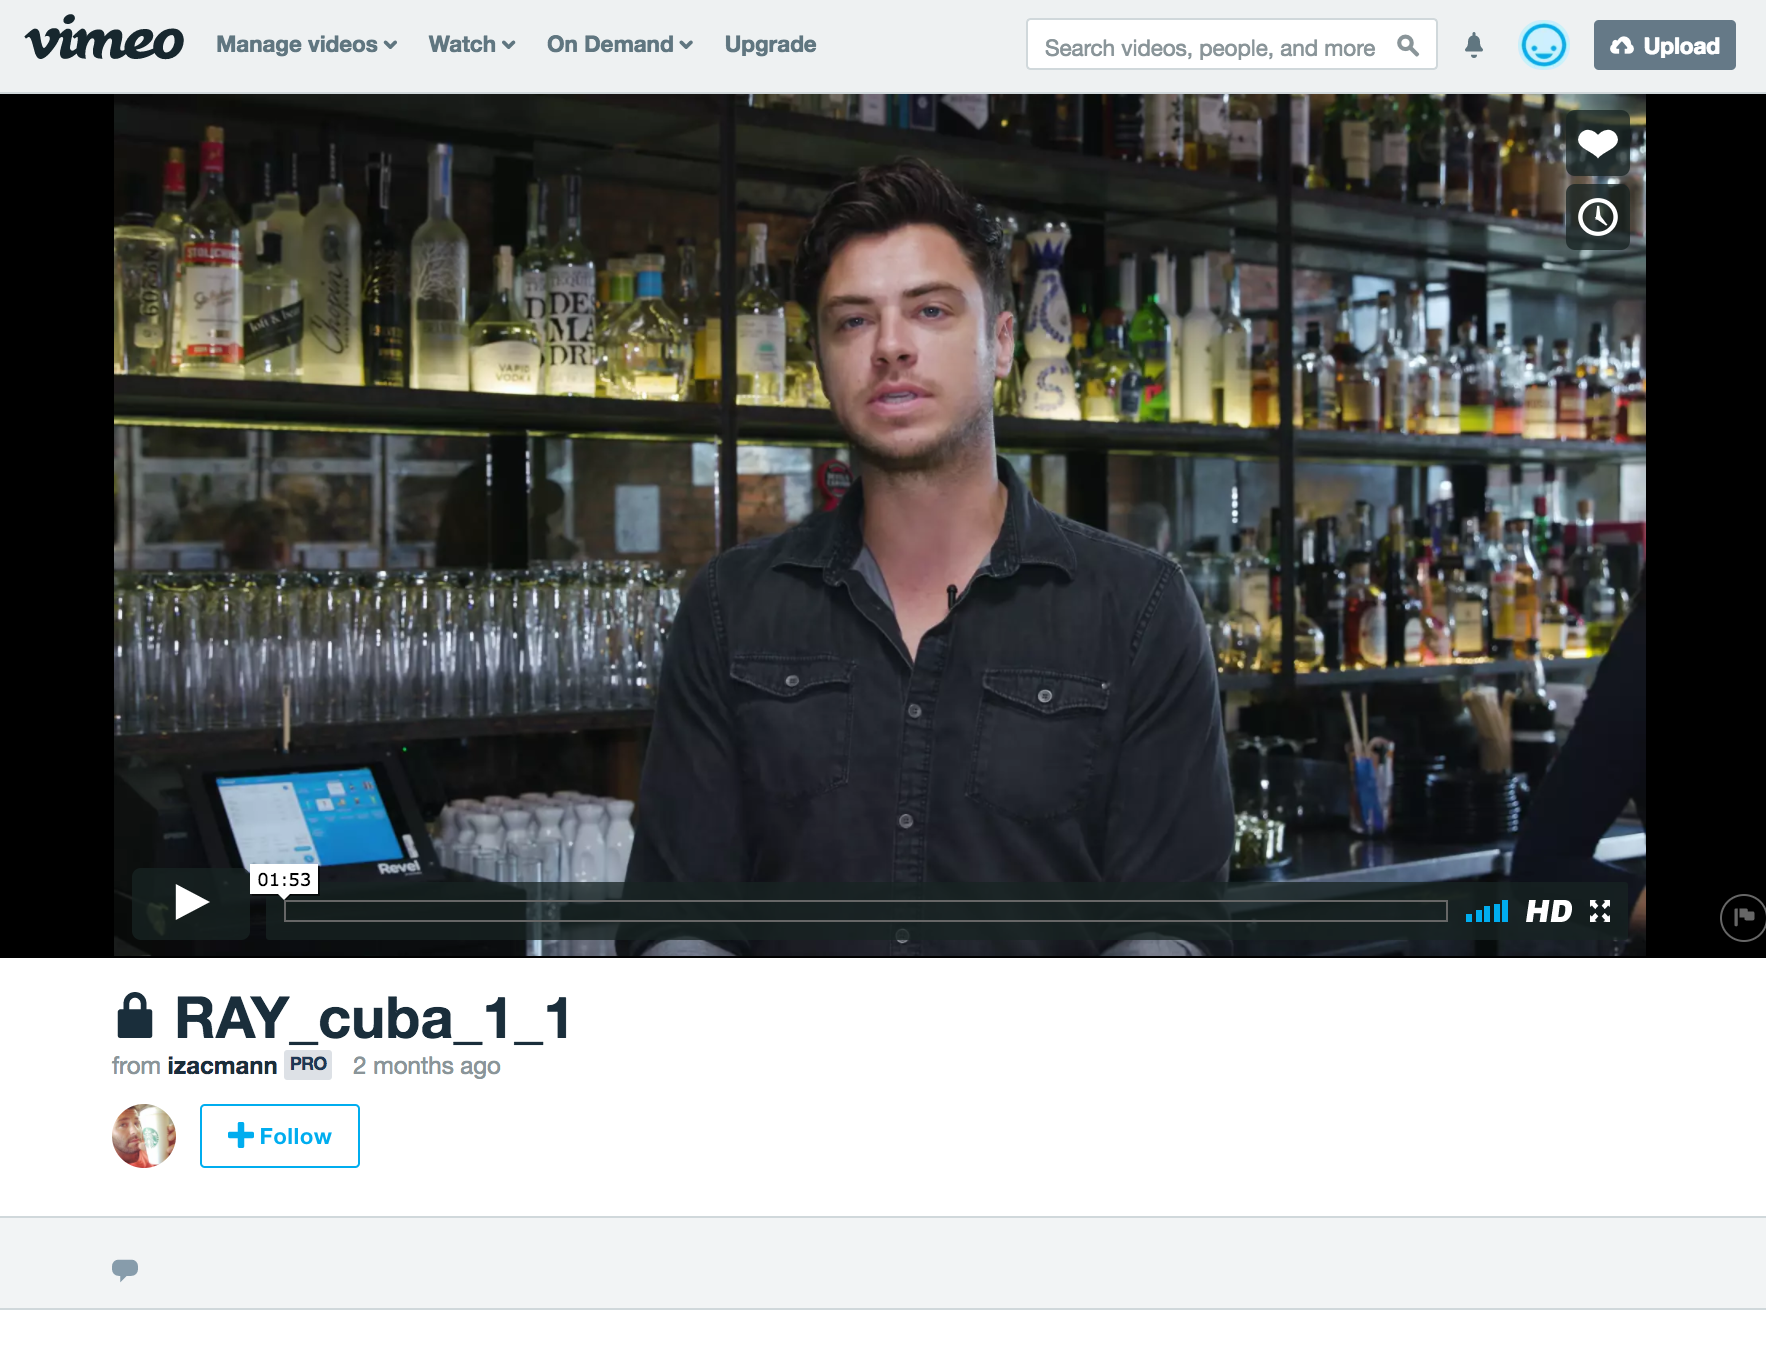 Ray Wicks on Drinks &Cuba - Wabi Sabi spirits expert Ray talks about the wine and spirits at Wabi Sabi Venice. Giving a great review of what the restaurant and bar world is all about. Curious about what's happening with Cuba, here's your review.